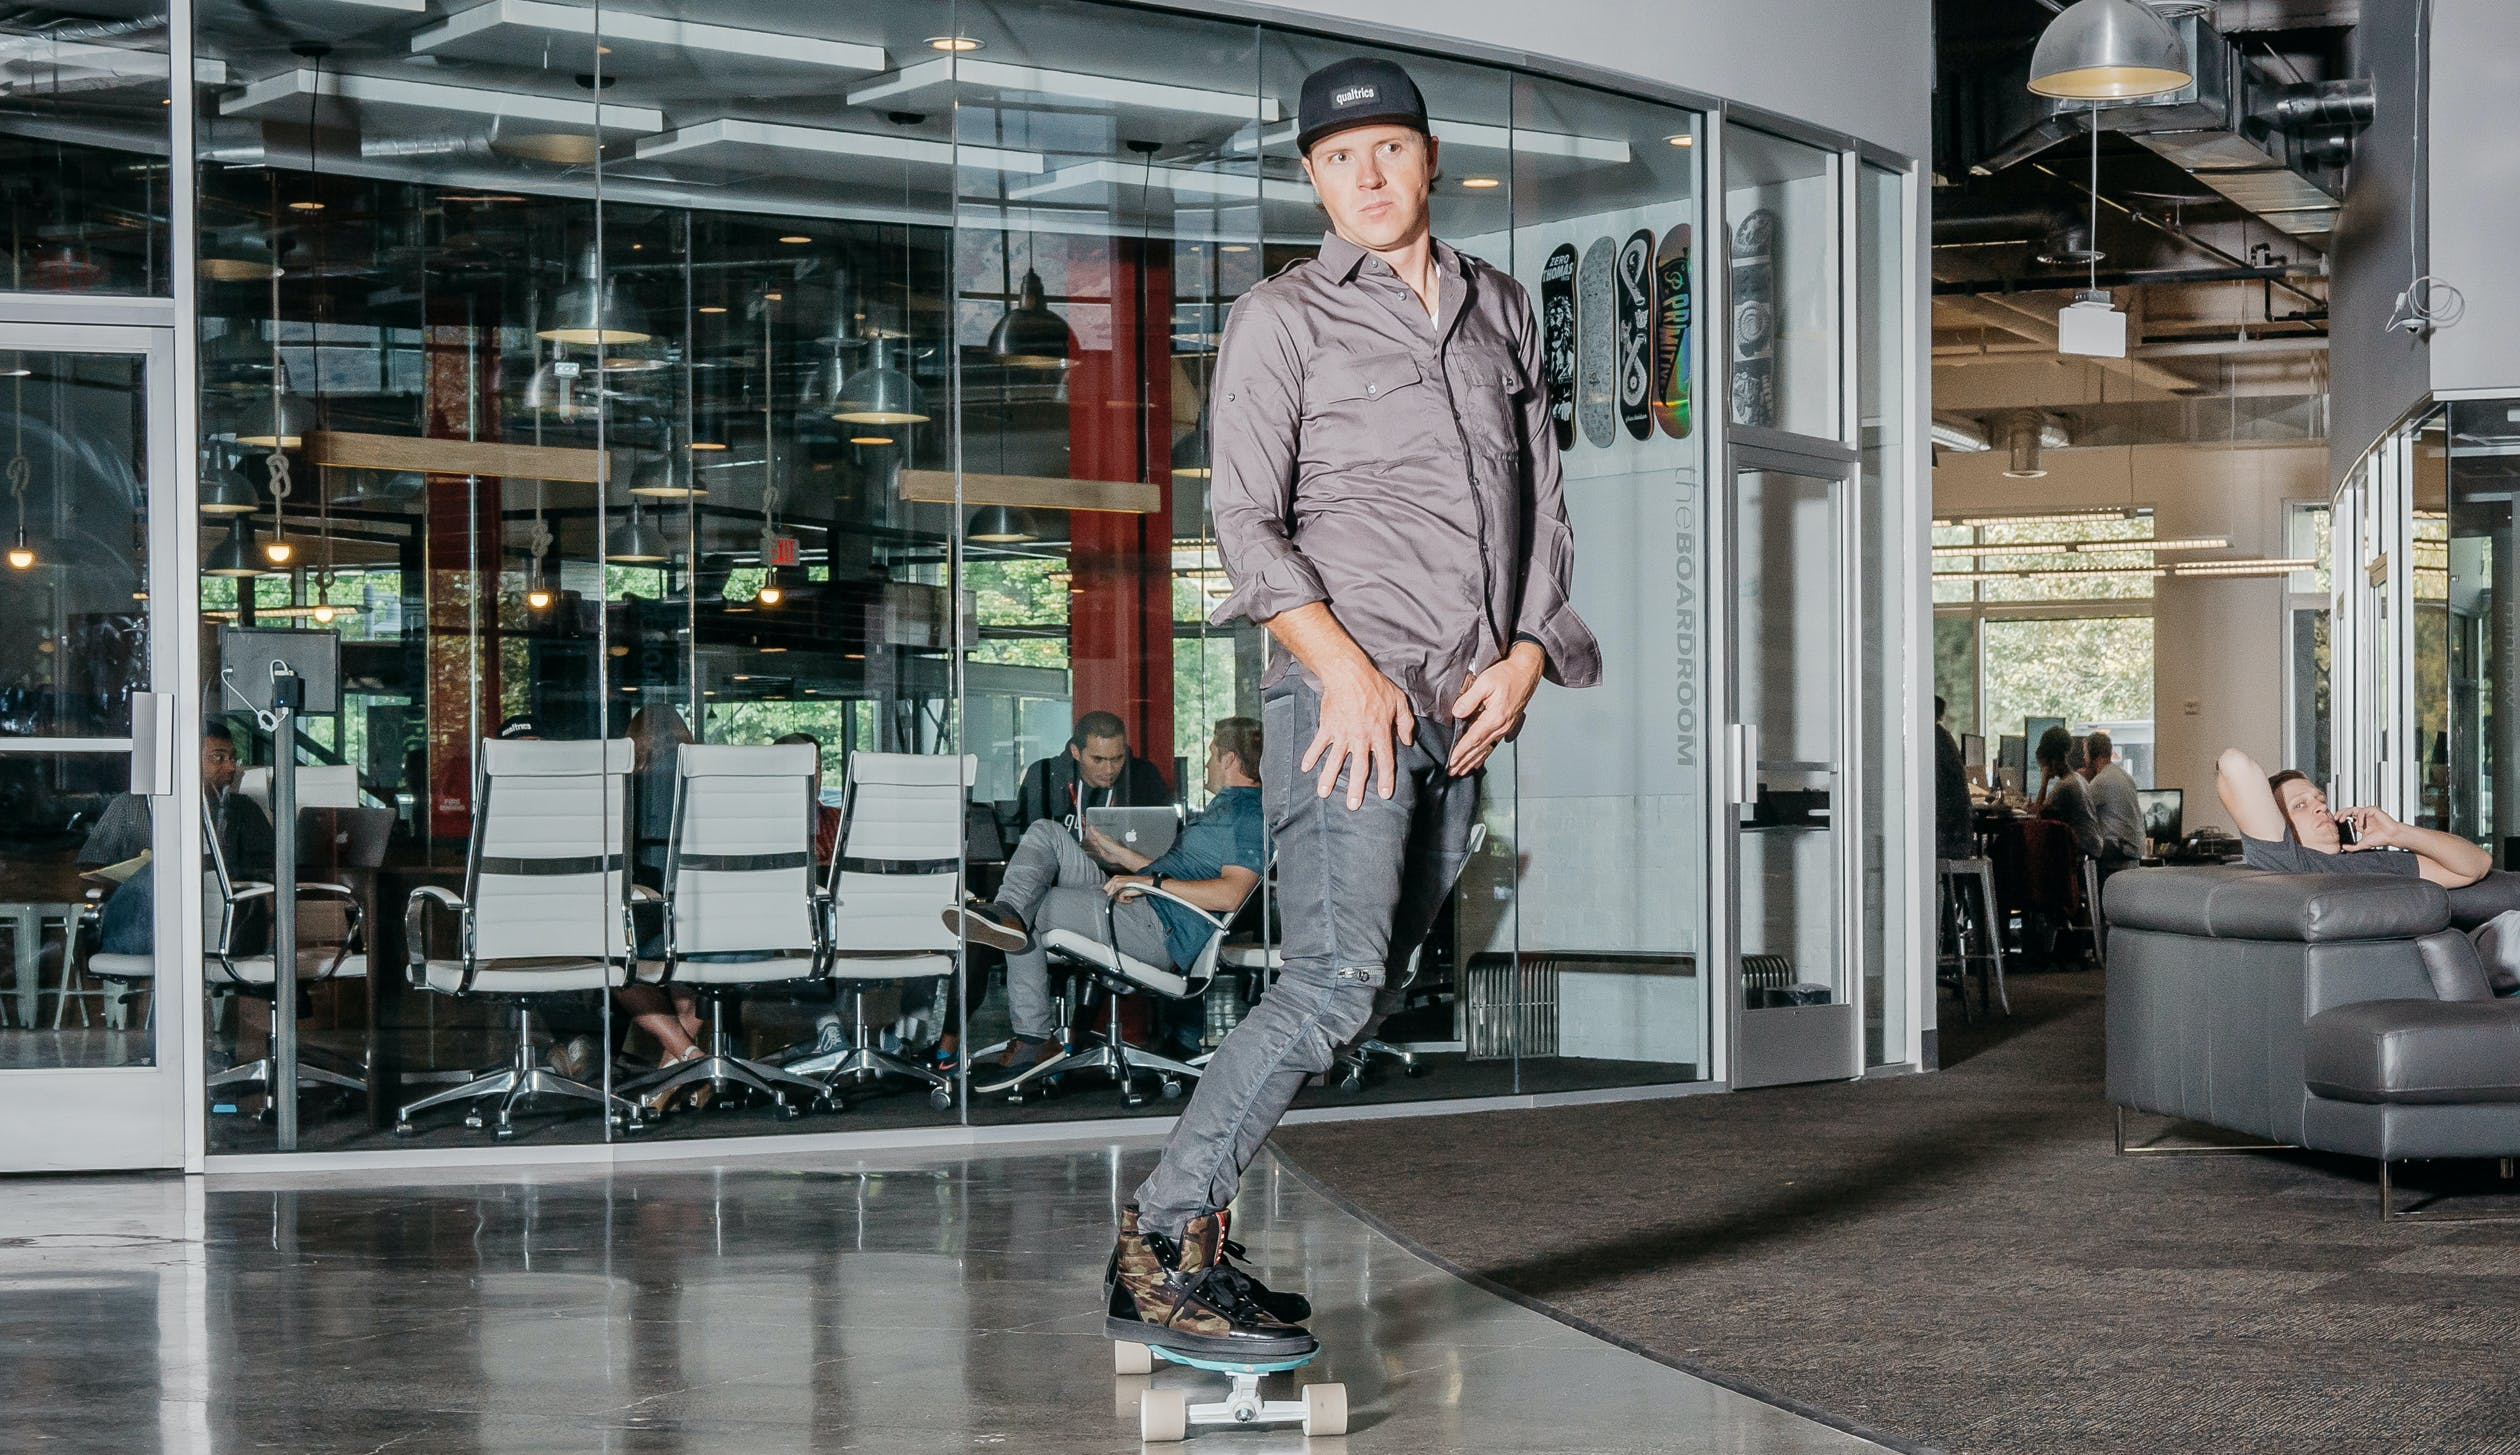 RYAN SMITH: THE CEO AND CO-FOUNDER OF QUALTRICS